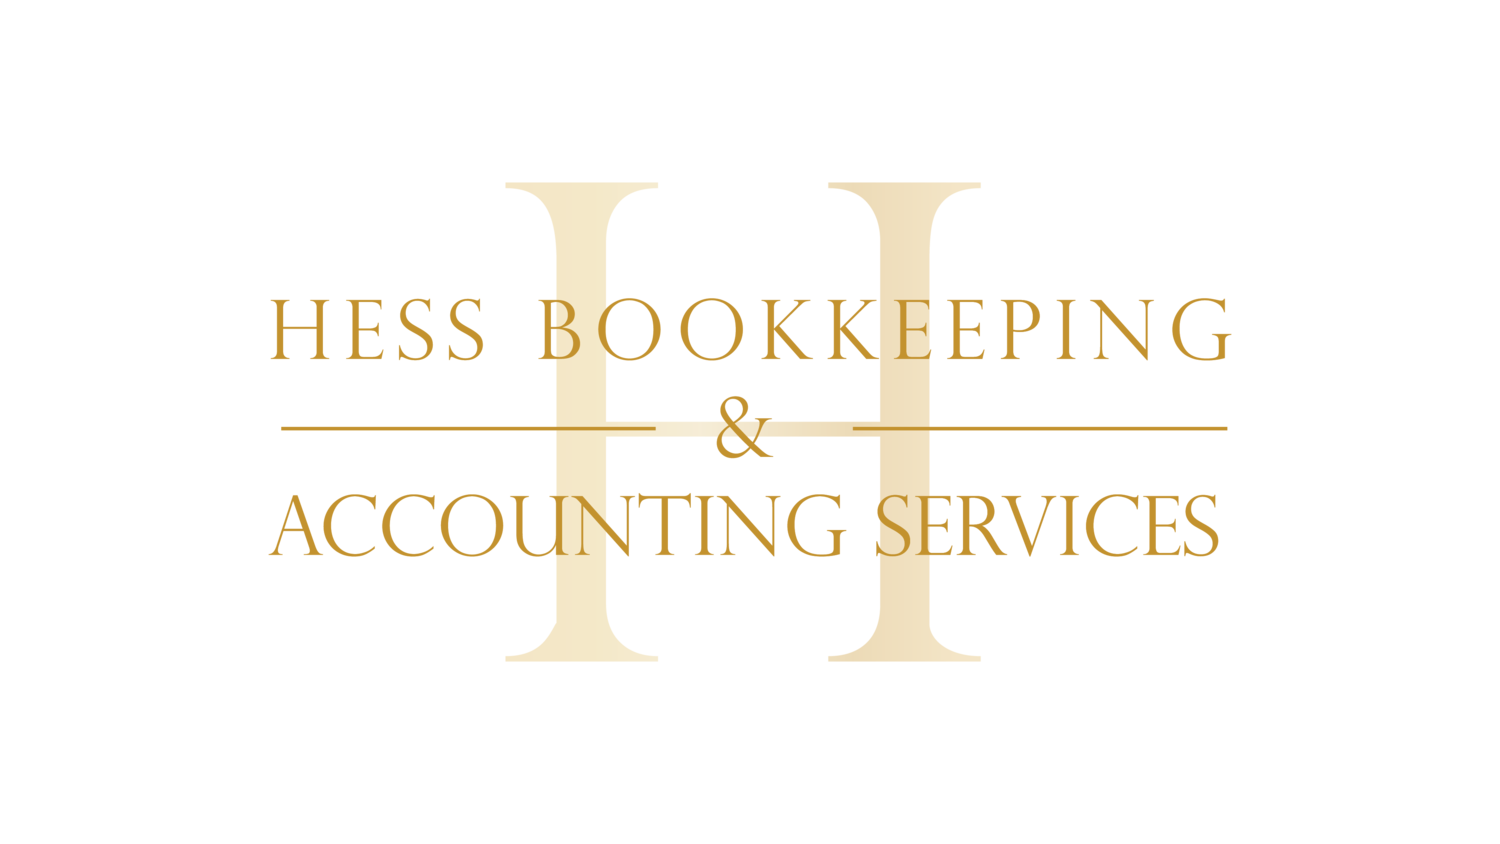 Hess Bookkeeping & Accounting Services